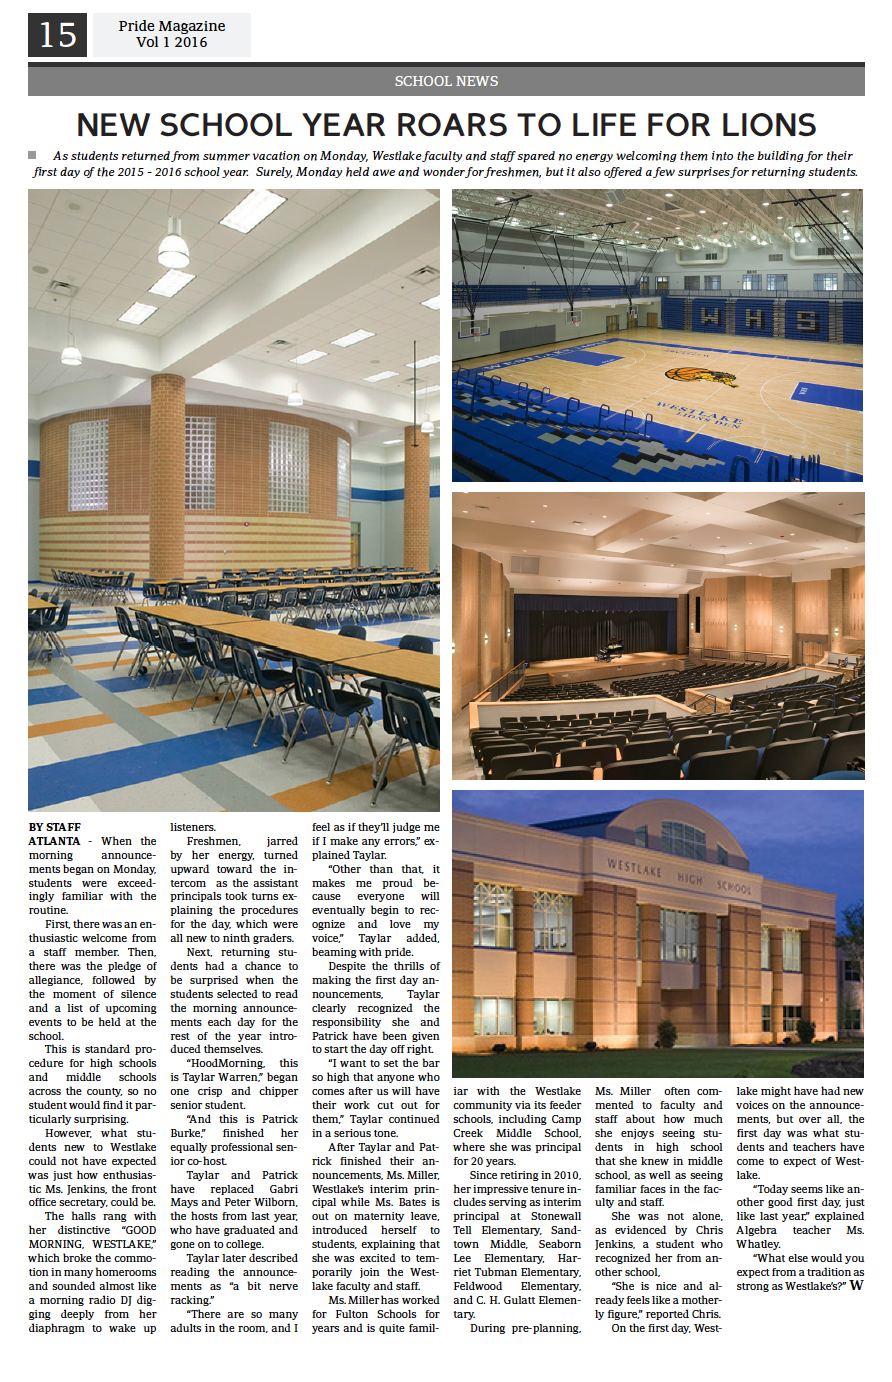 Newspaper Preview 015.png